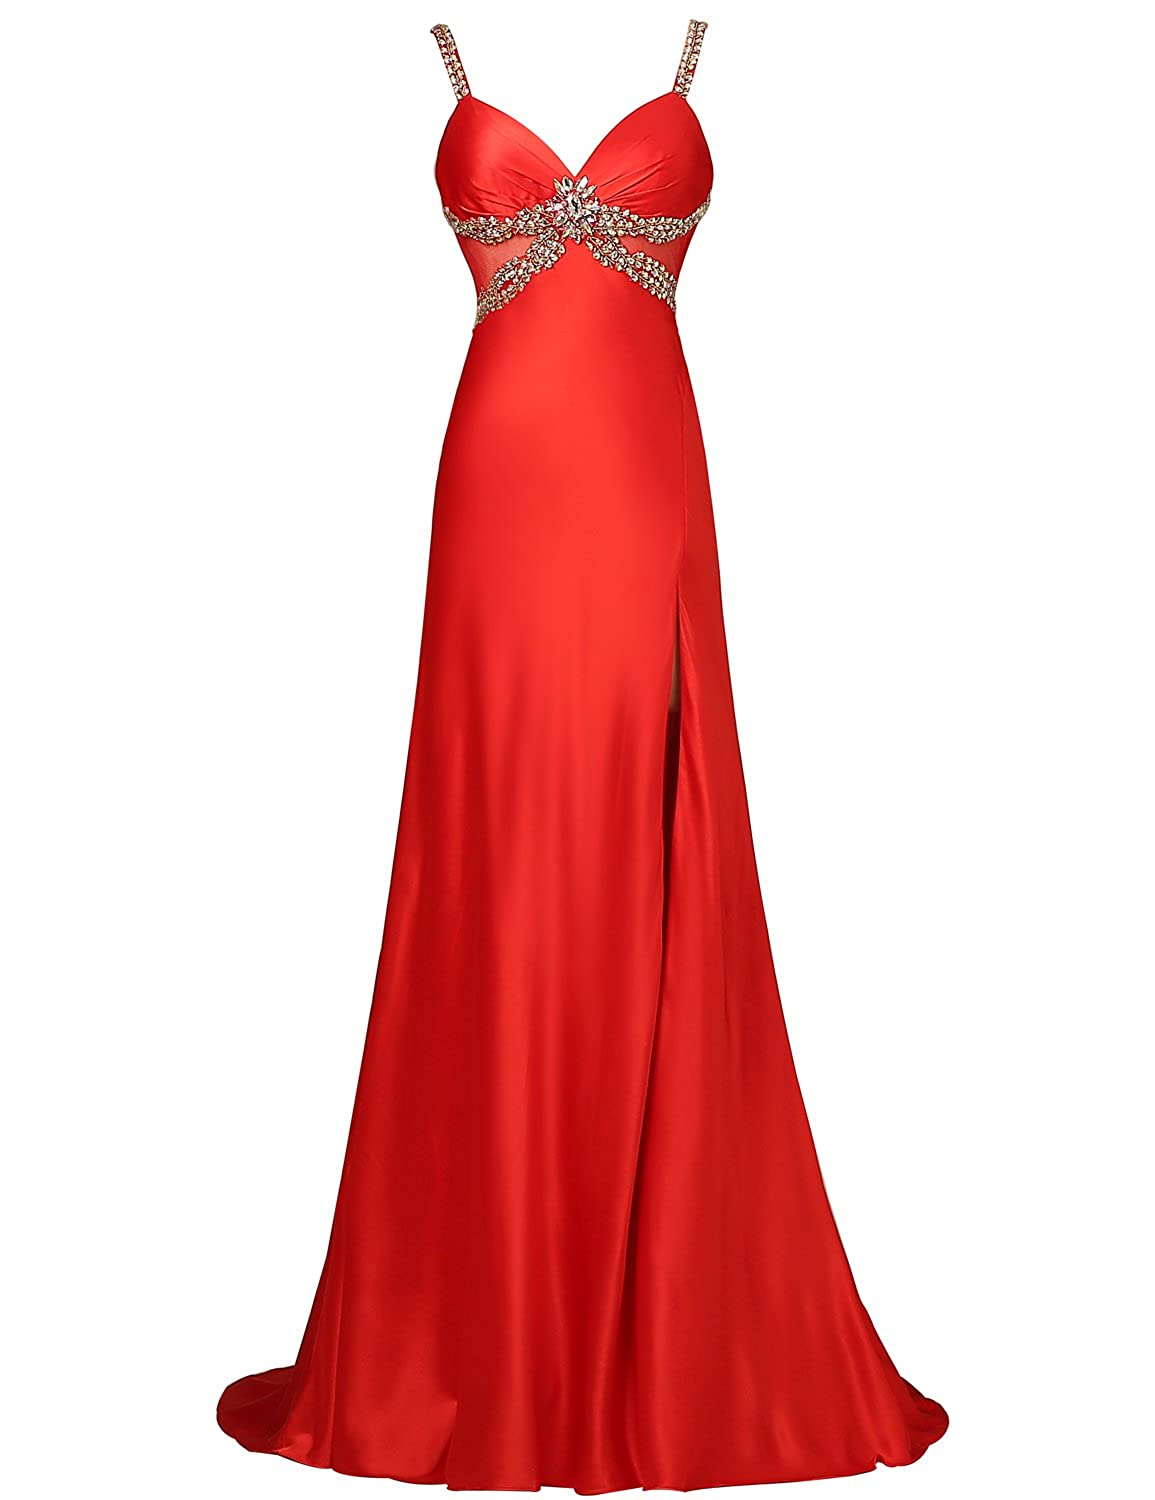 Sarahbridal Women's Sexy Spaghetti Strap Prom Dress Satin Split Front Formal Evening Party Dresses with Beaded SHY006